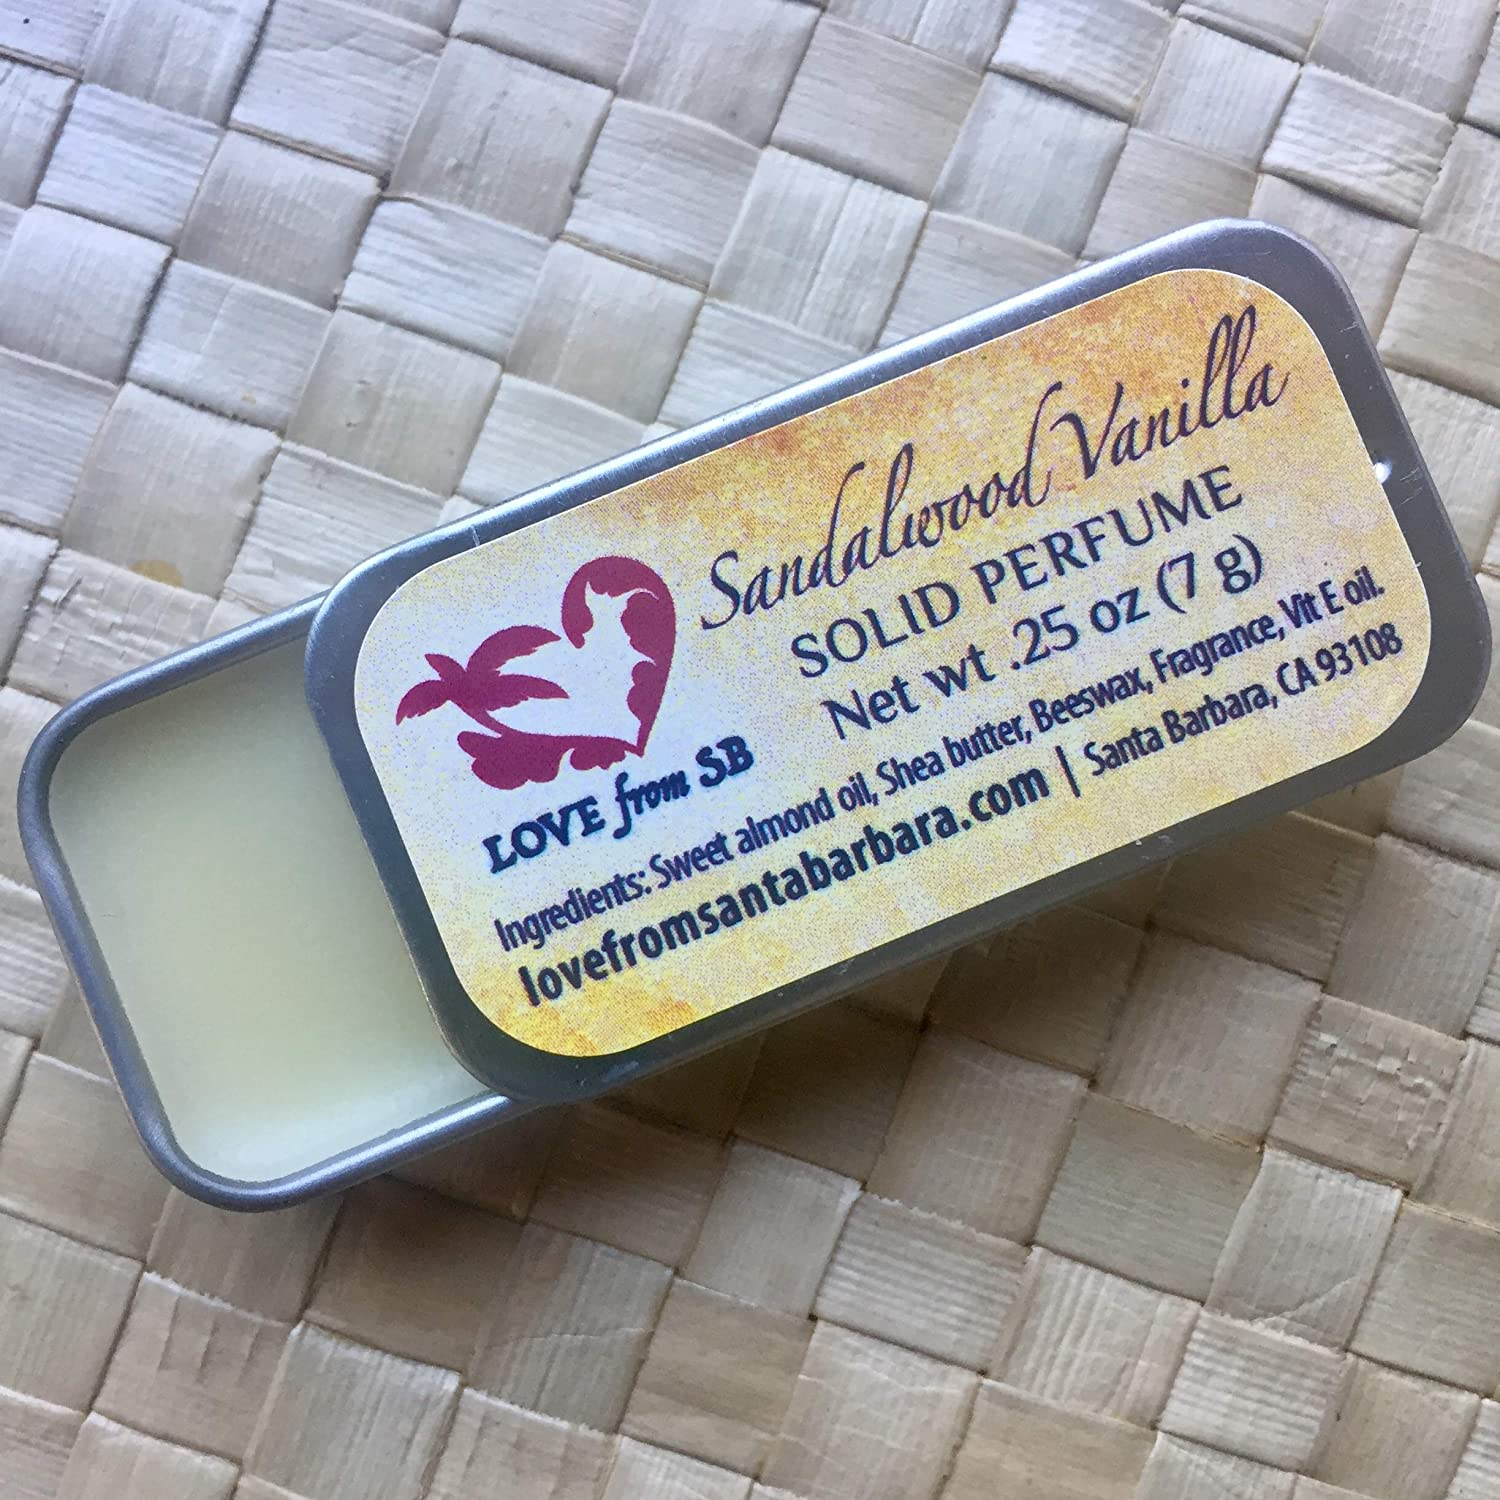 Compact Personal Sandalwood Vanilla Solid Perfume | Compact Personal Luxurious Artisan Spa Gift | Convenient, fits in your purse or travel bag | Sandalwood Perfume